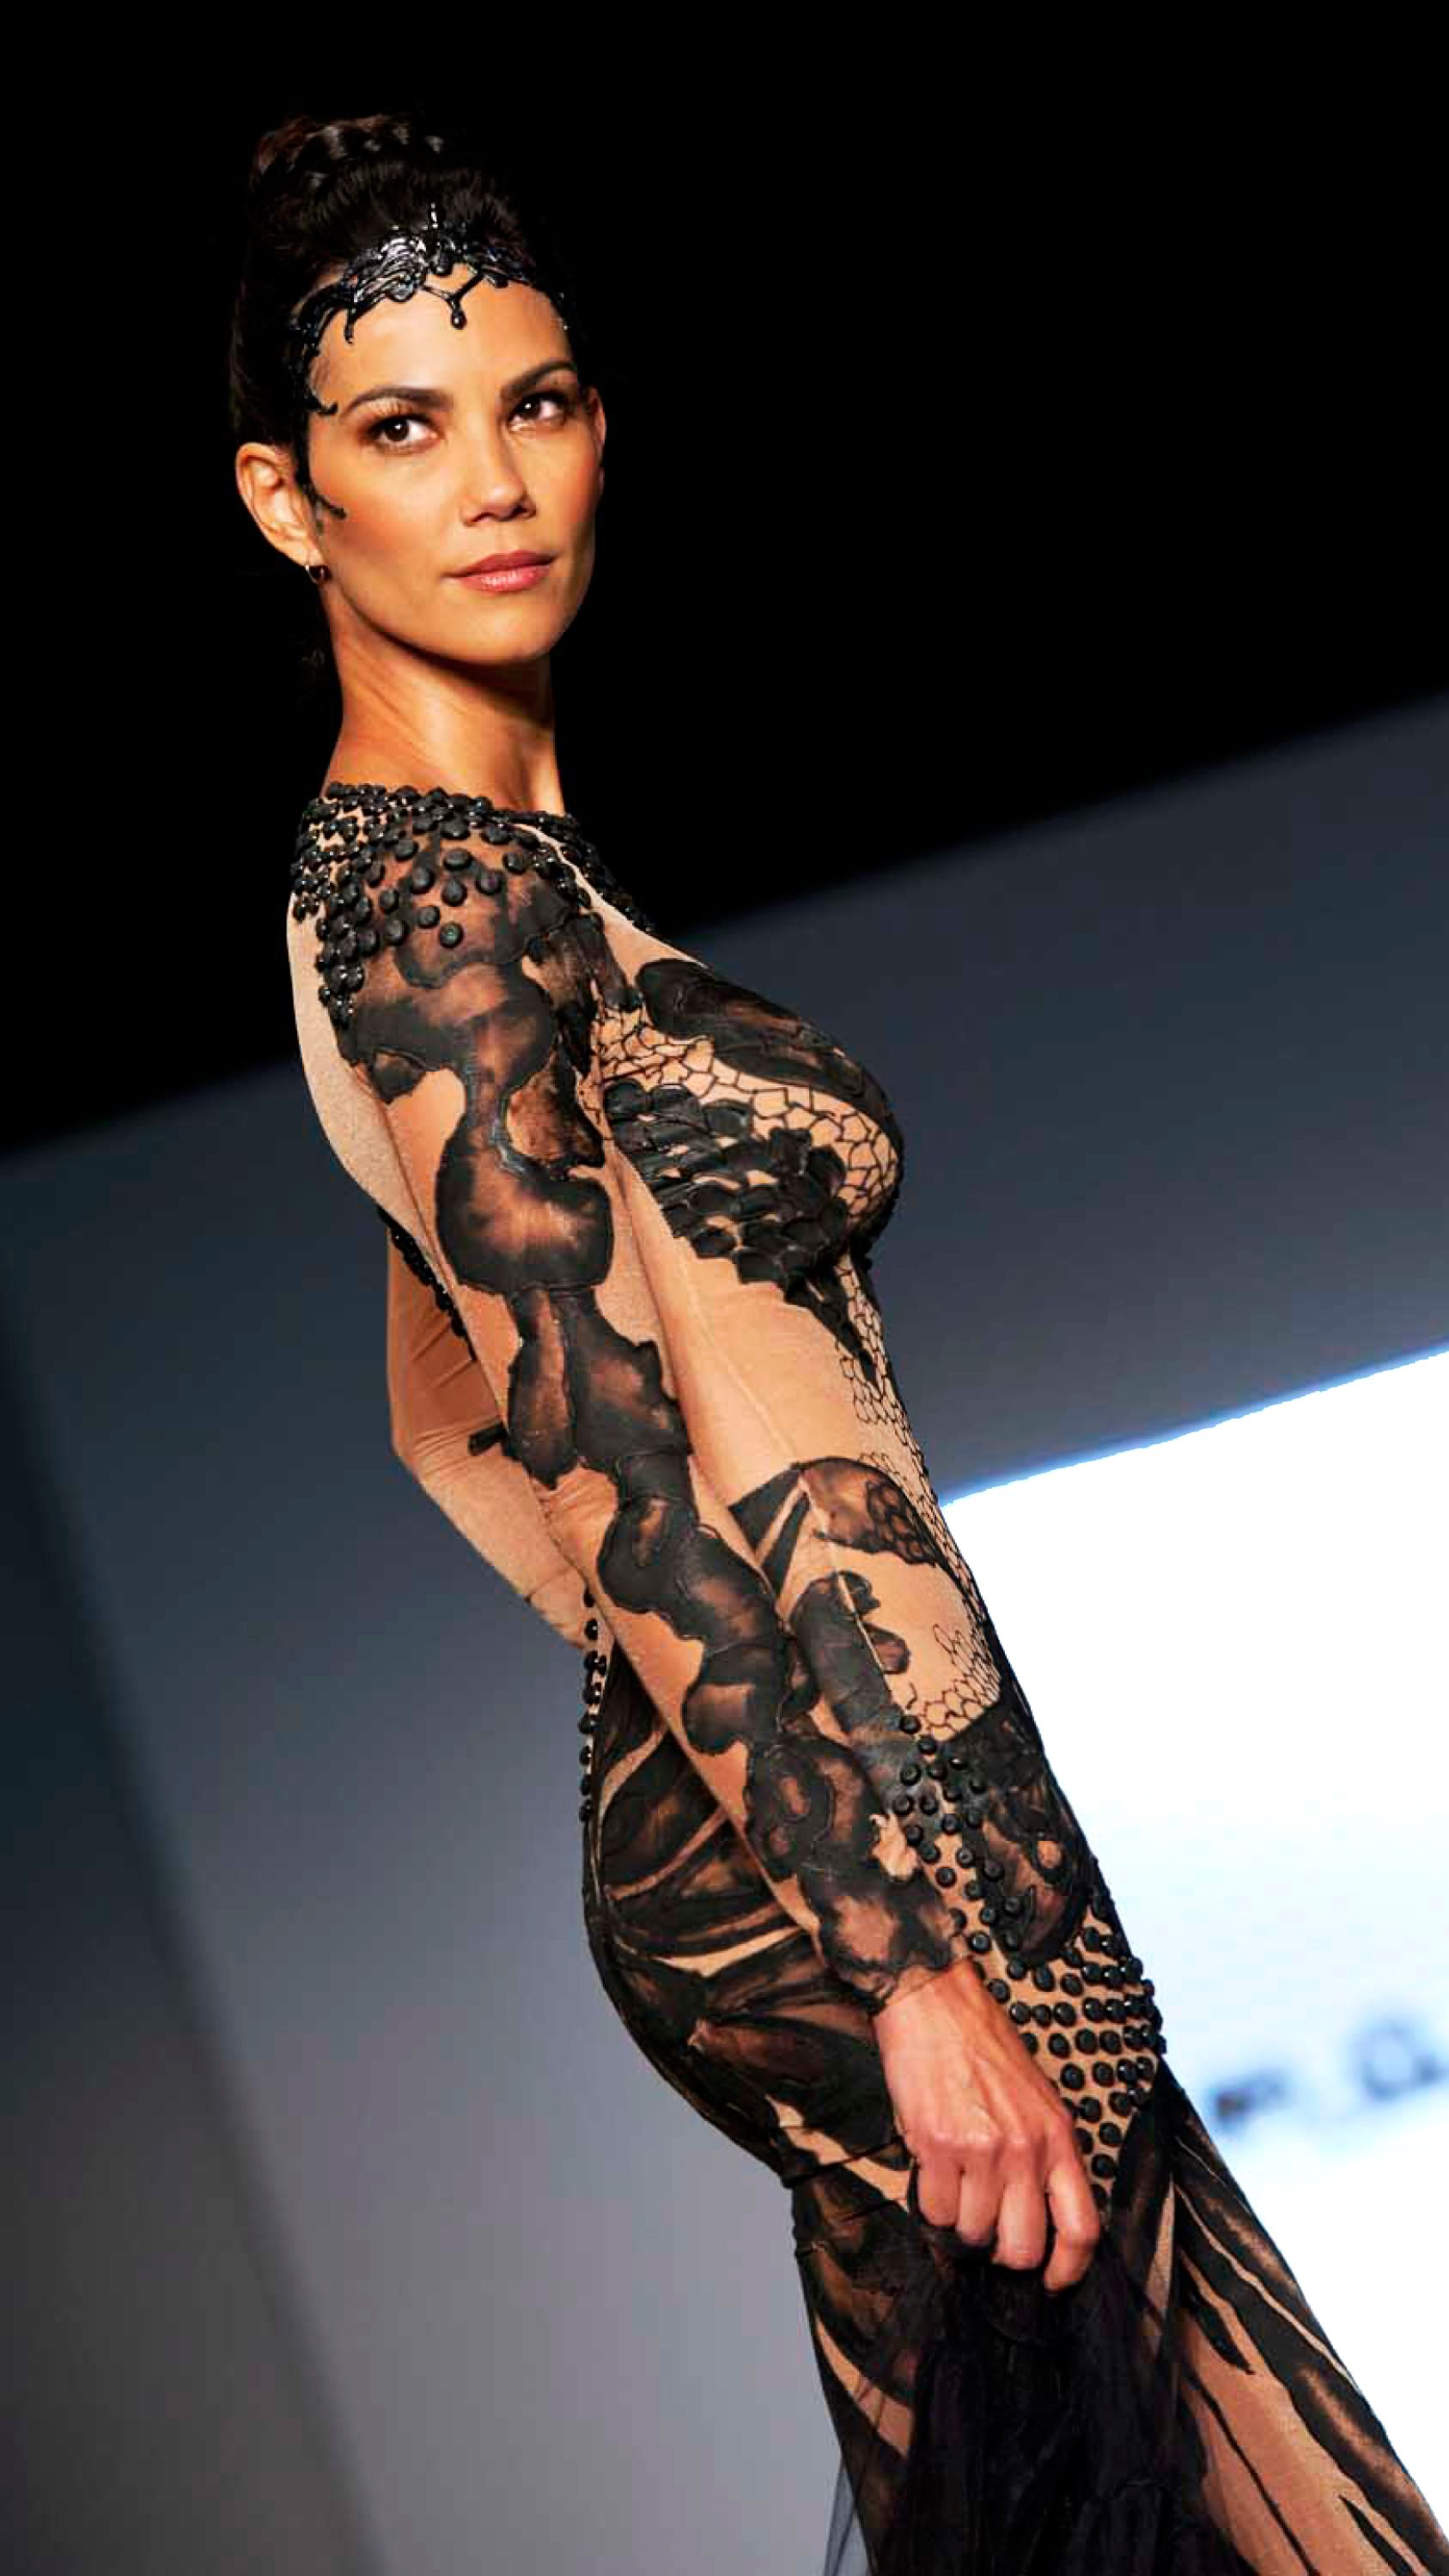 Pin lovi poe for tattoo pictures to pin on pinterest on pinterest - Hand Painted Body Suit Nude Black Evening Gown